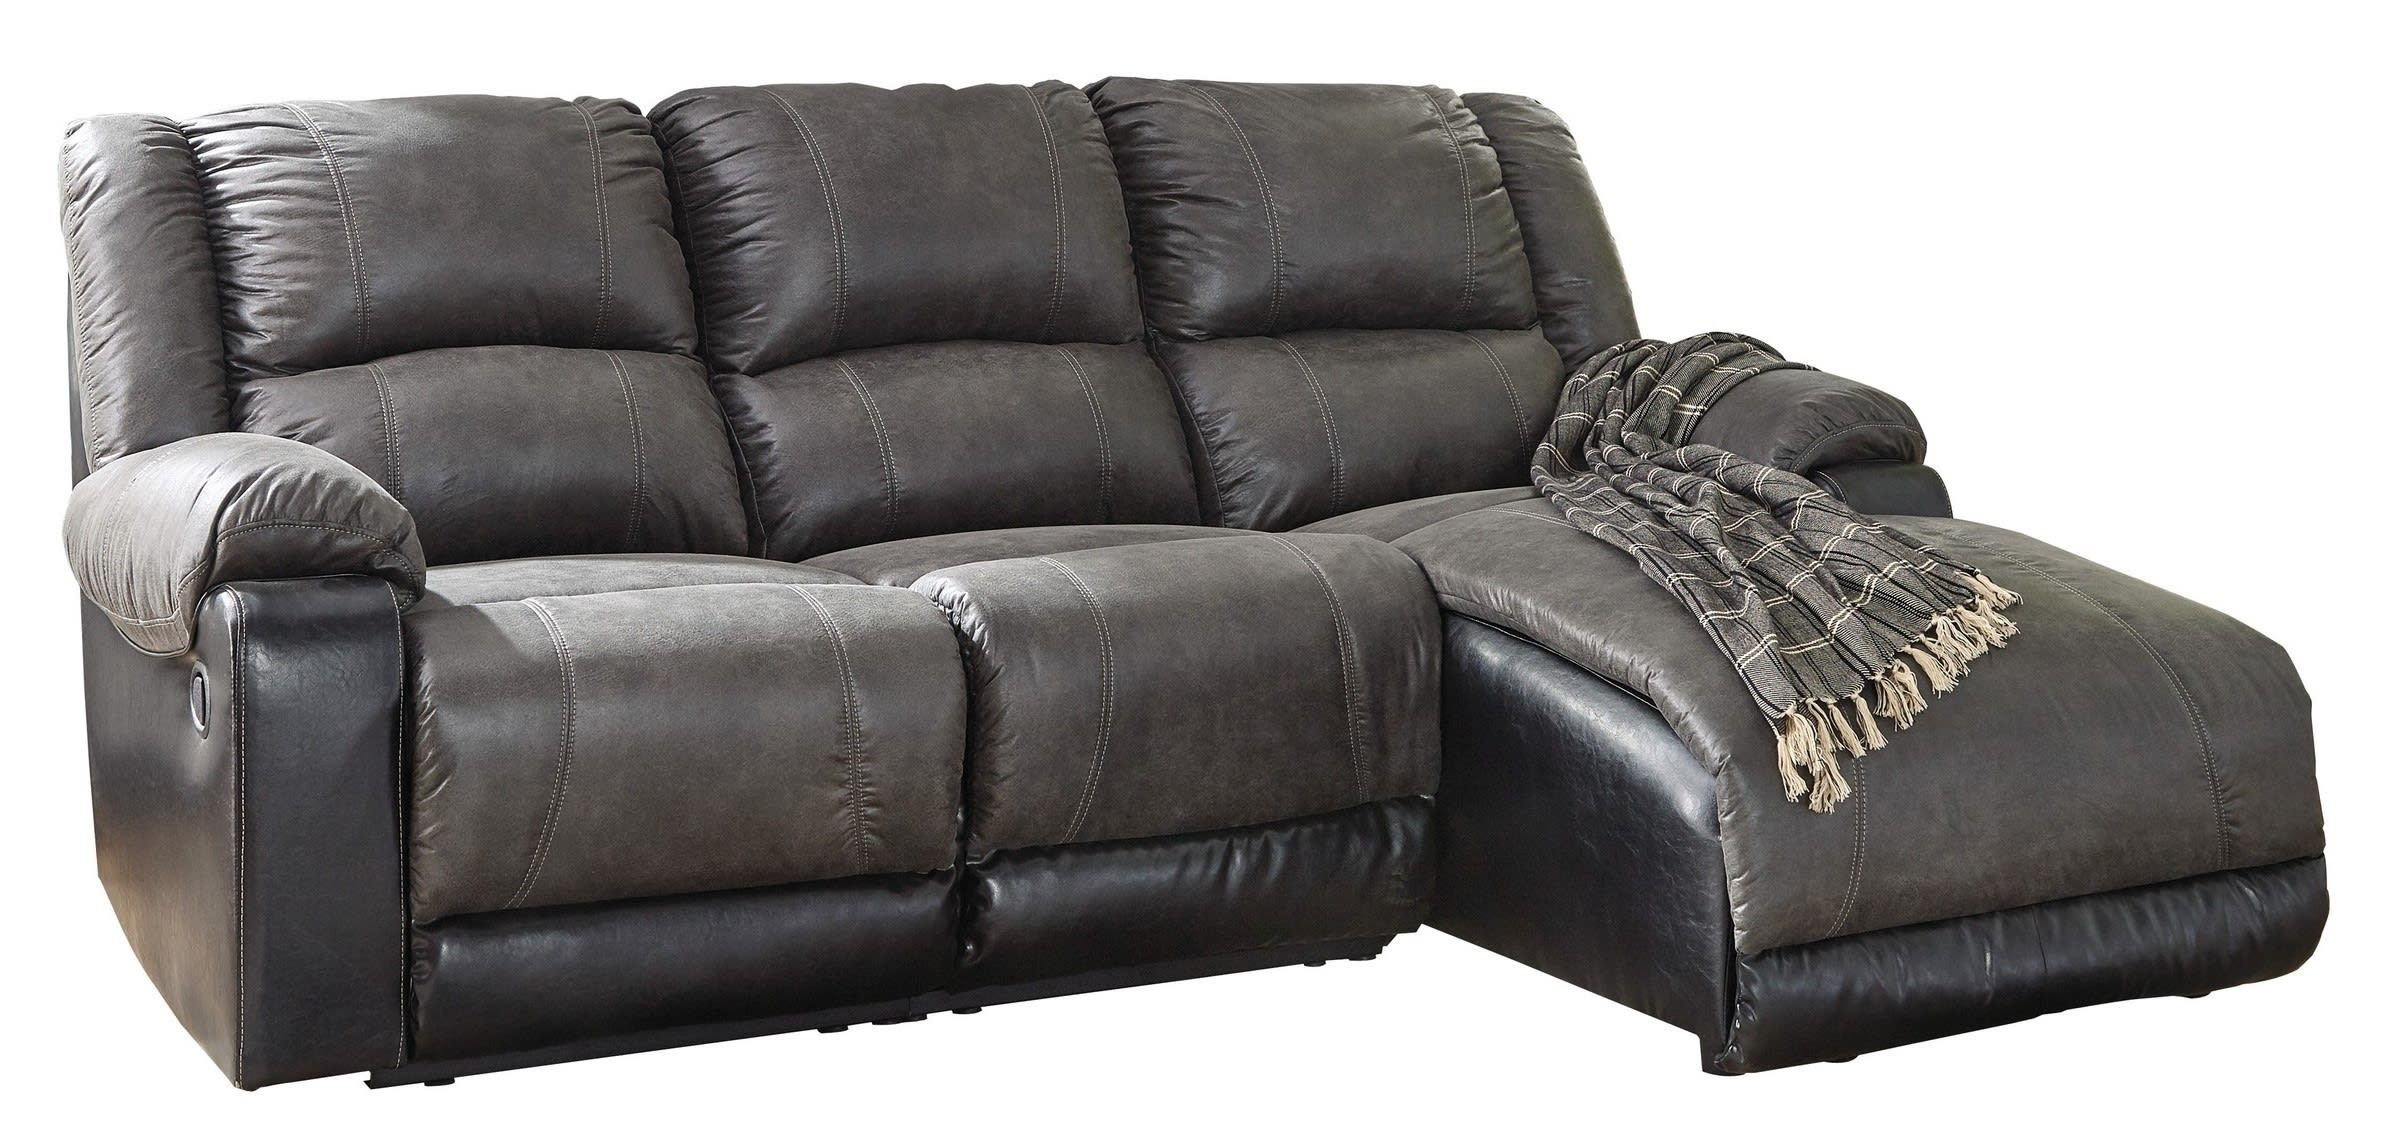 Signature Designashley Nantahala Slate 3 Piece Right Throughout Dulce Right Sectional Sofas Twill Stone (View 15 of 15)